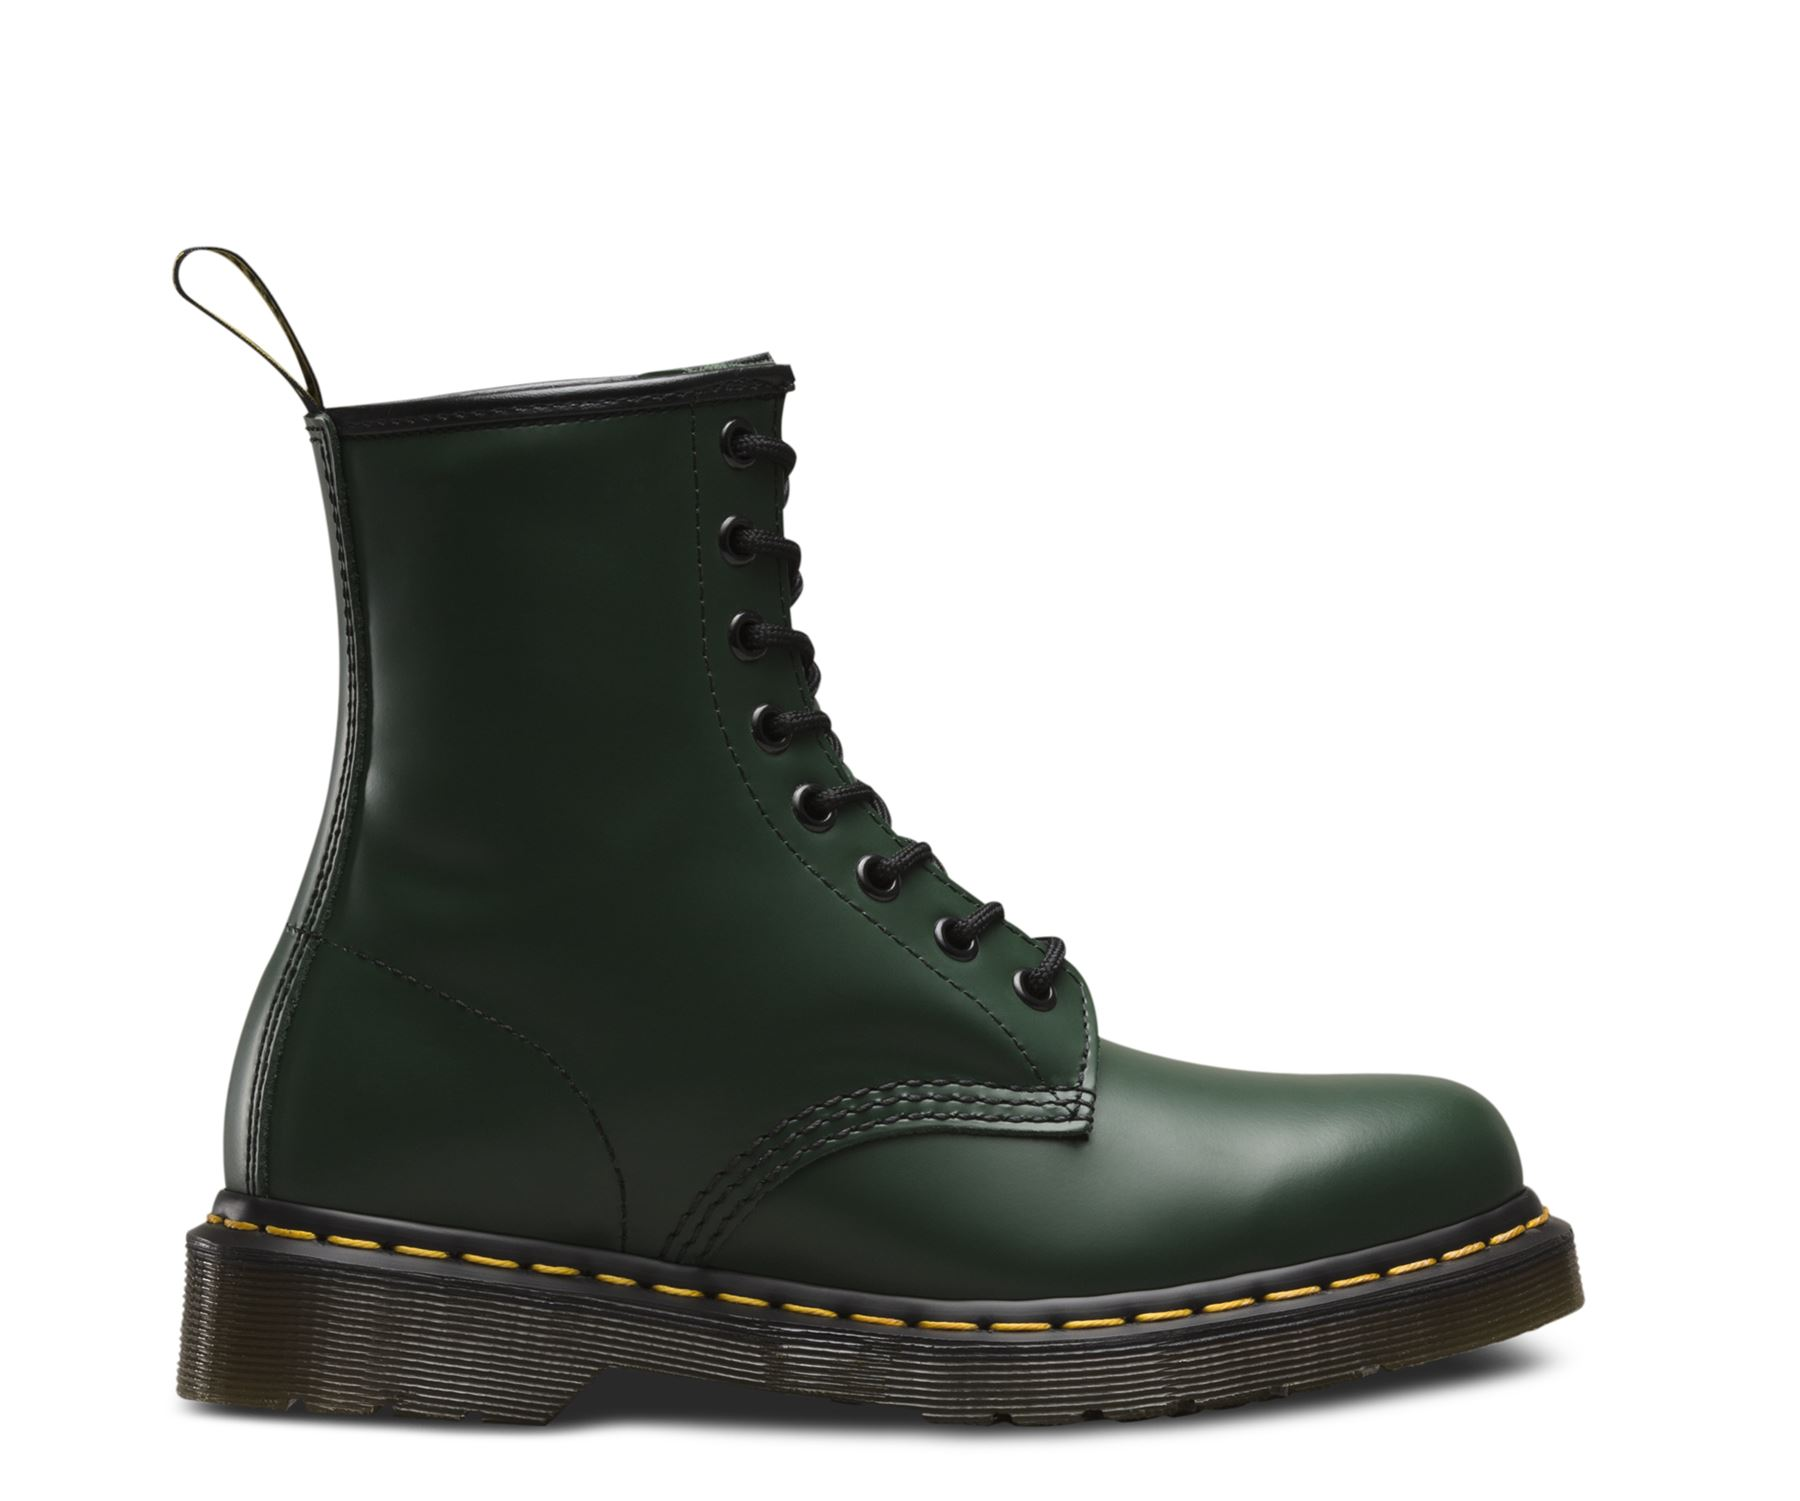 dr martens unisex 1460 classic 8 up smooth leather ankle doc dmc boots ebay. Black Bedroom Furniture Sets. Home Design Ideas